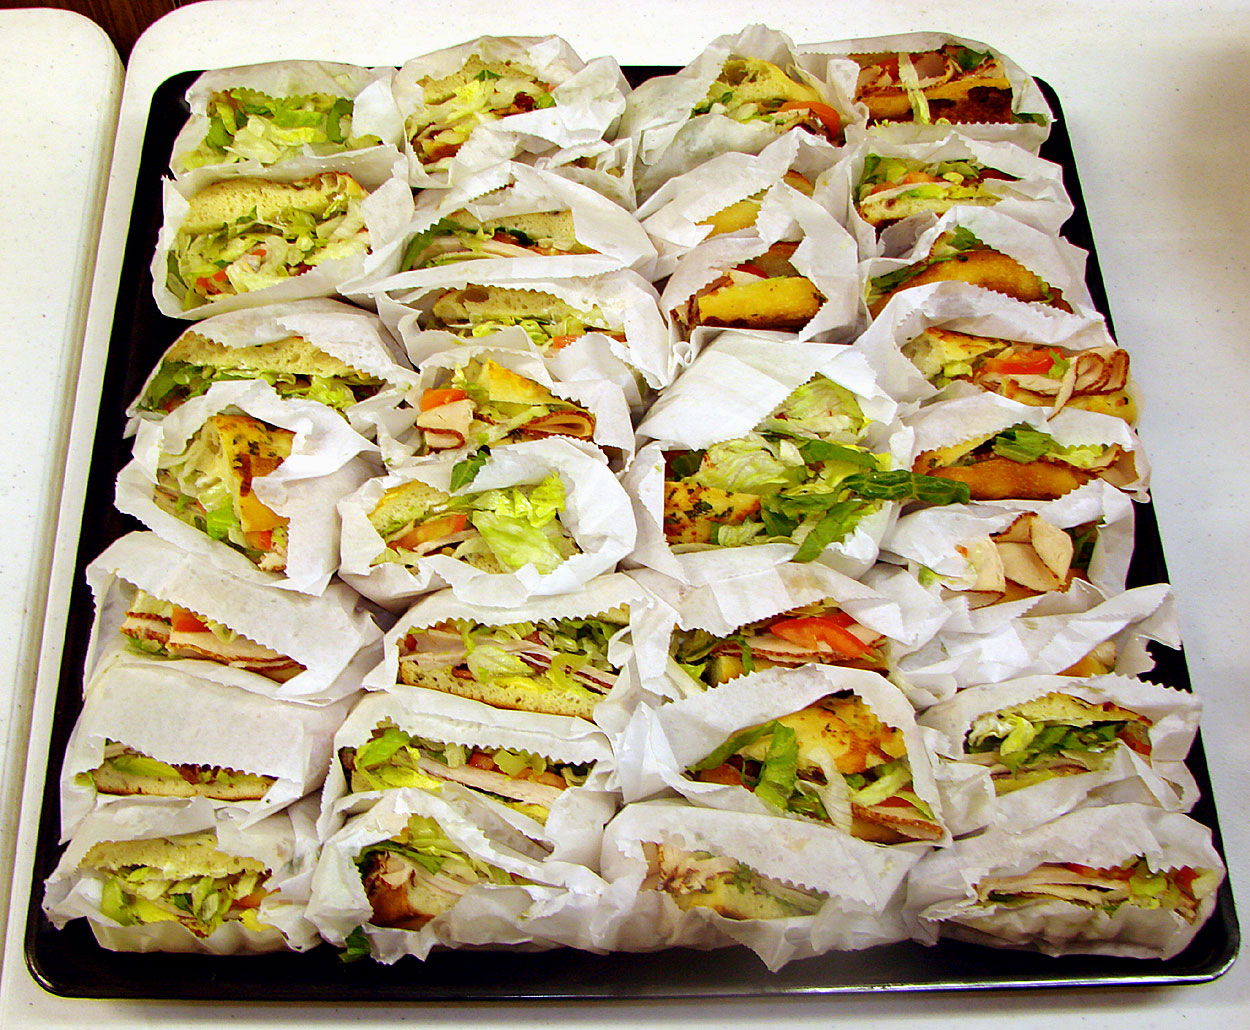 California Pizza Kitchen Catering | A Catered Luncheon By Cpk Tasty Island